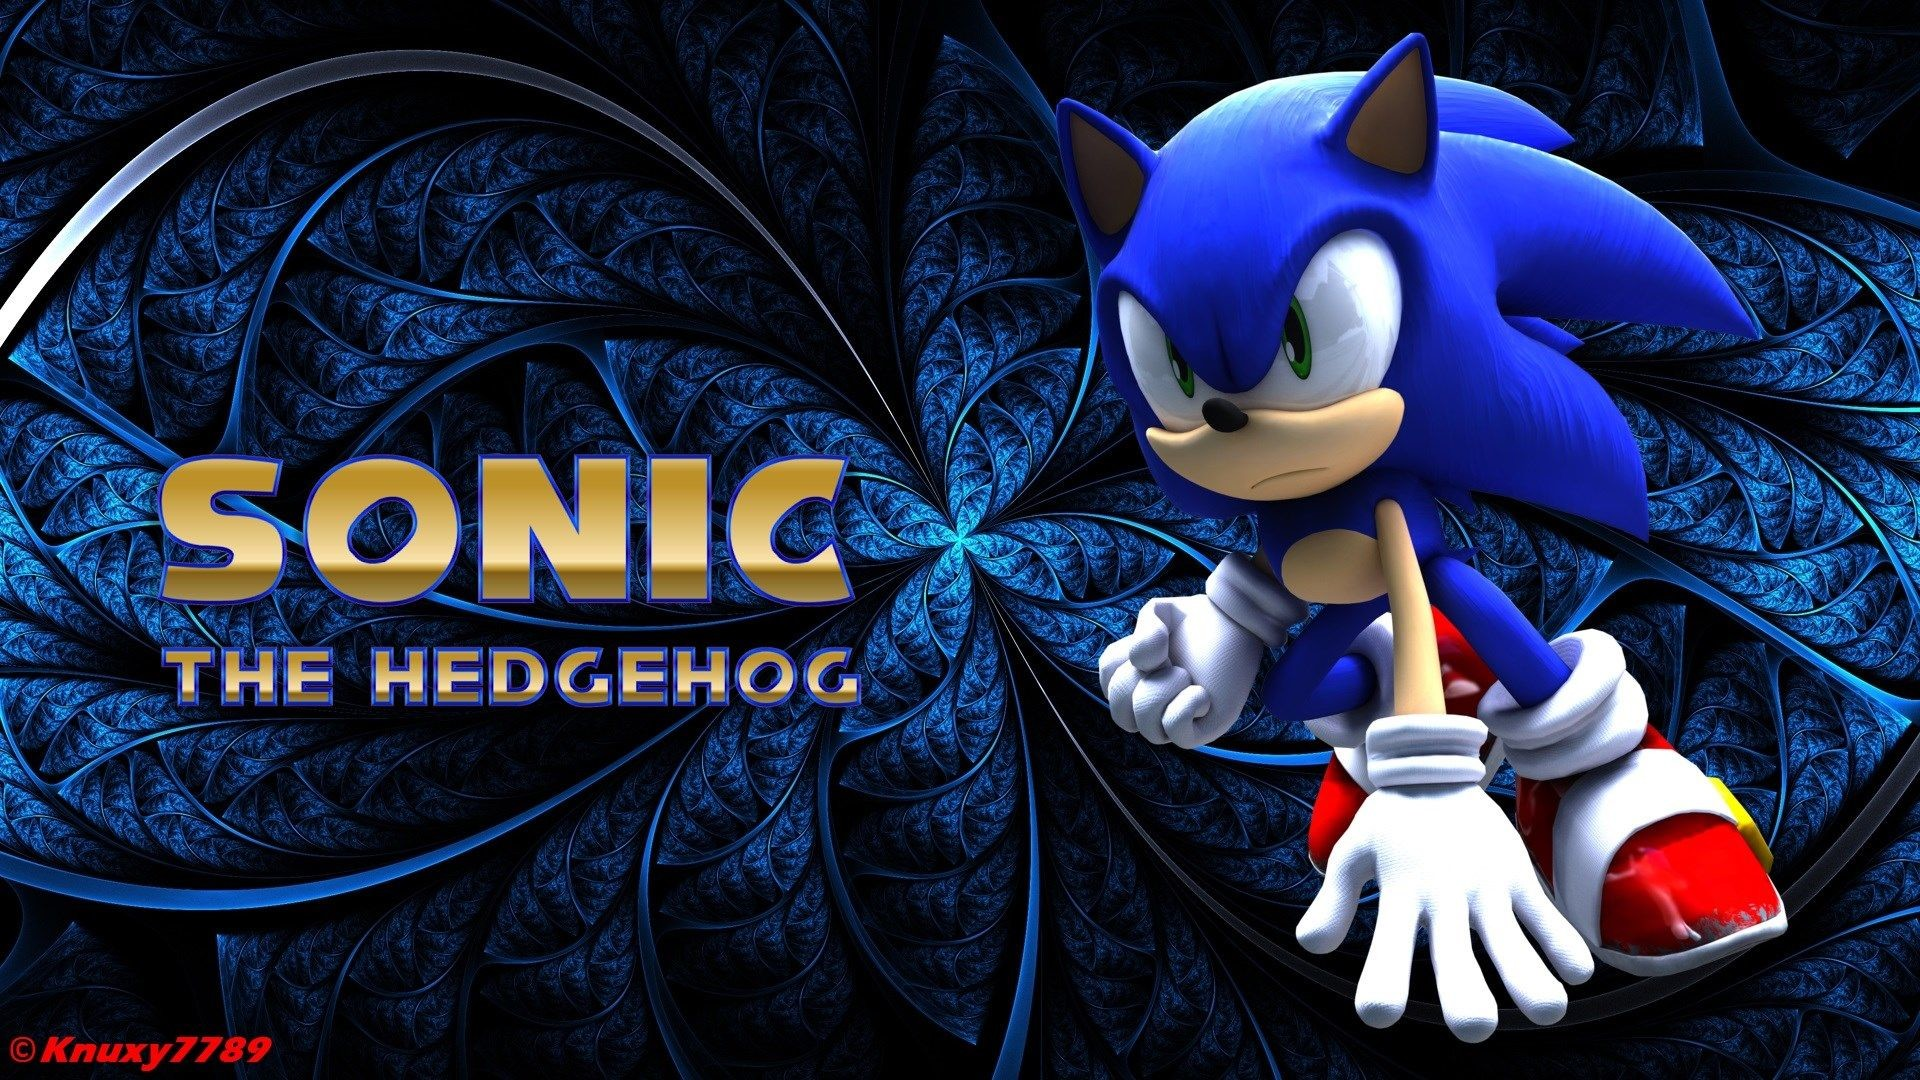 Sonic The Hedgehog HD Wallpaper 3.